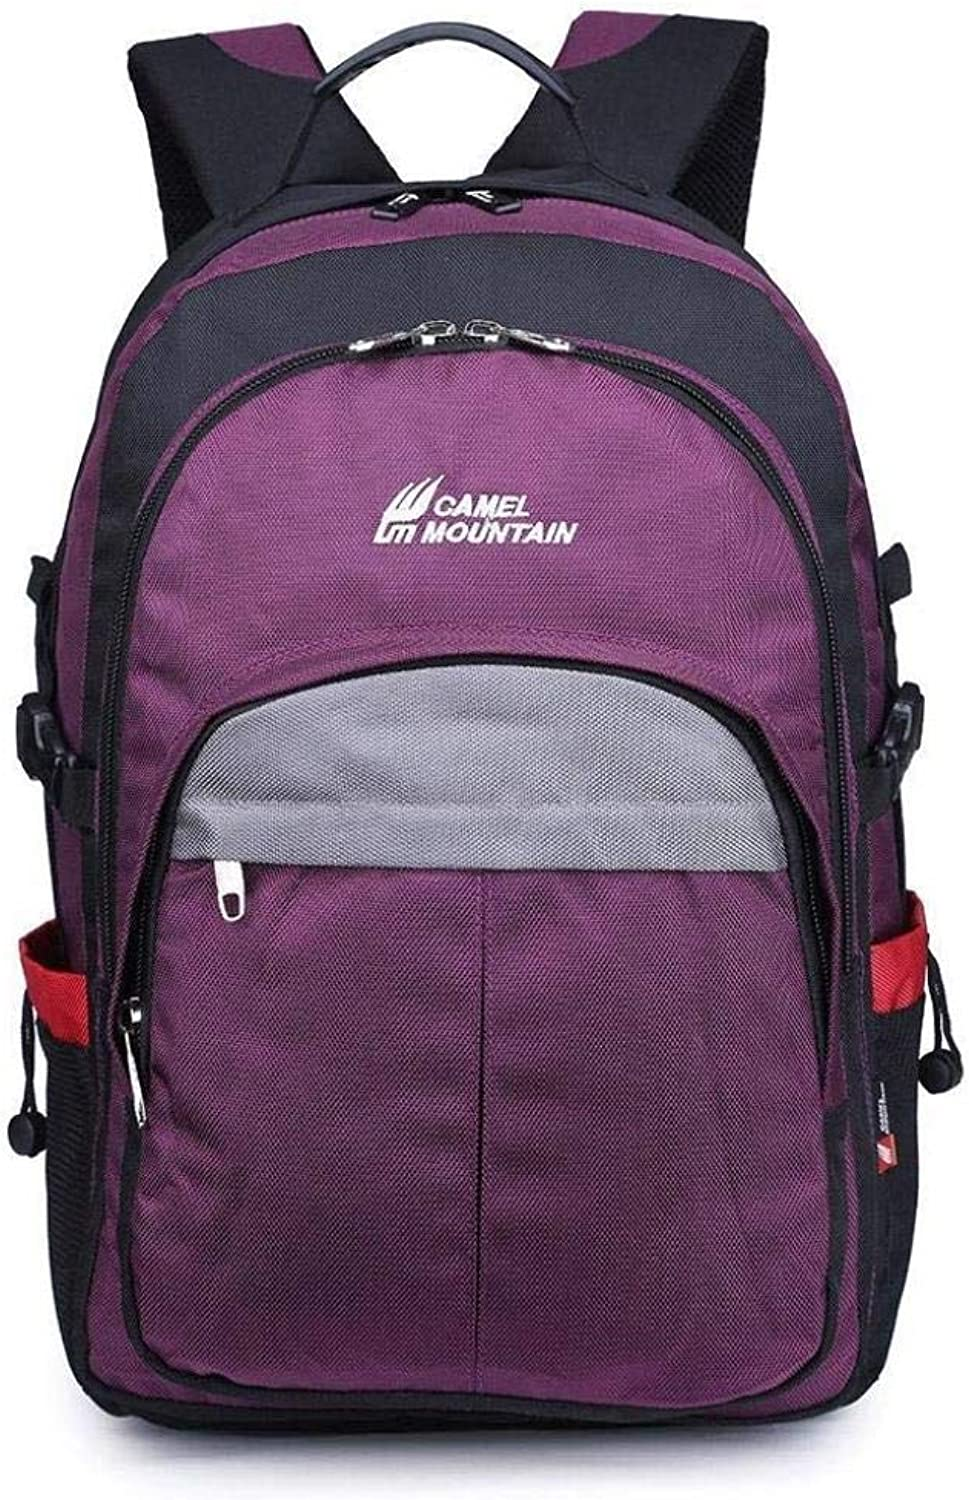 Multi-Function Backpack Large Capacity Travel Shoulder Bag ZXMSZ (color   A)